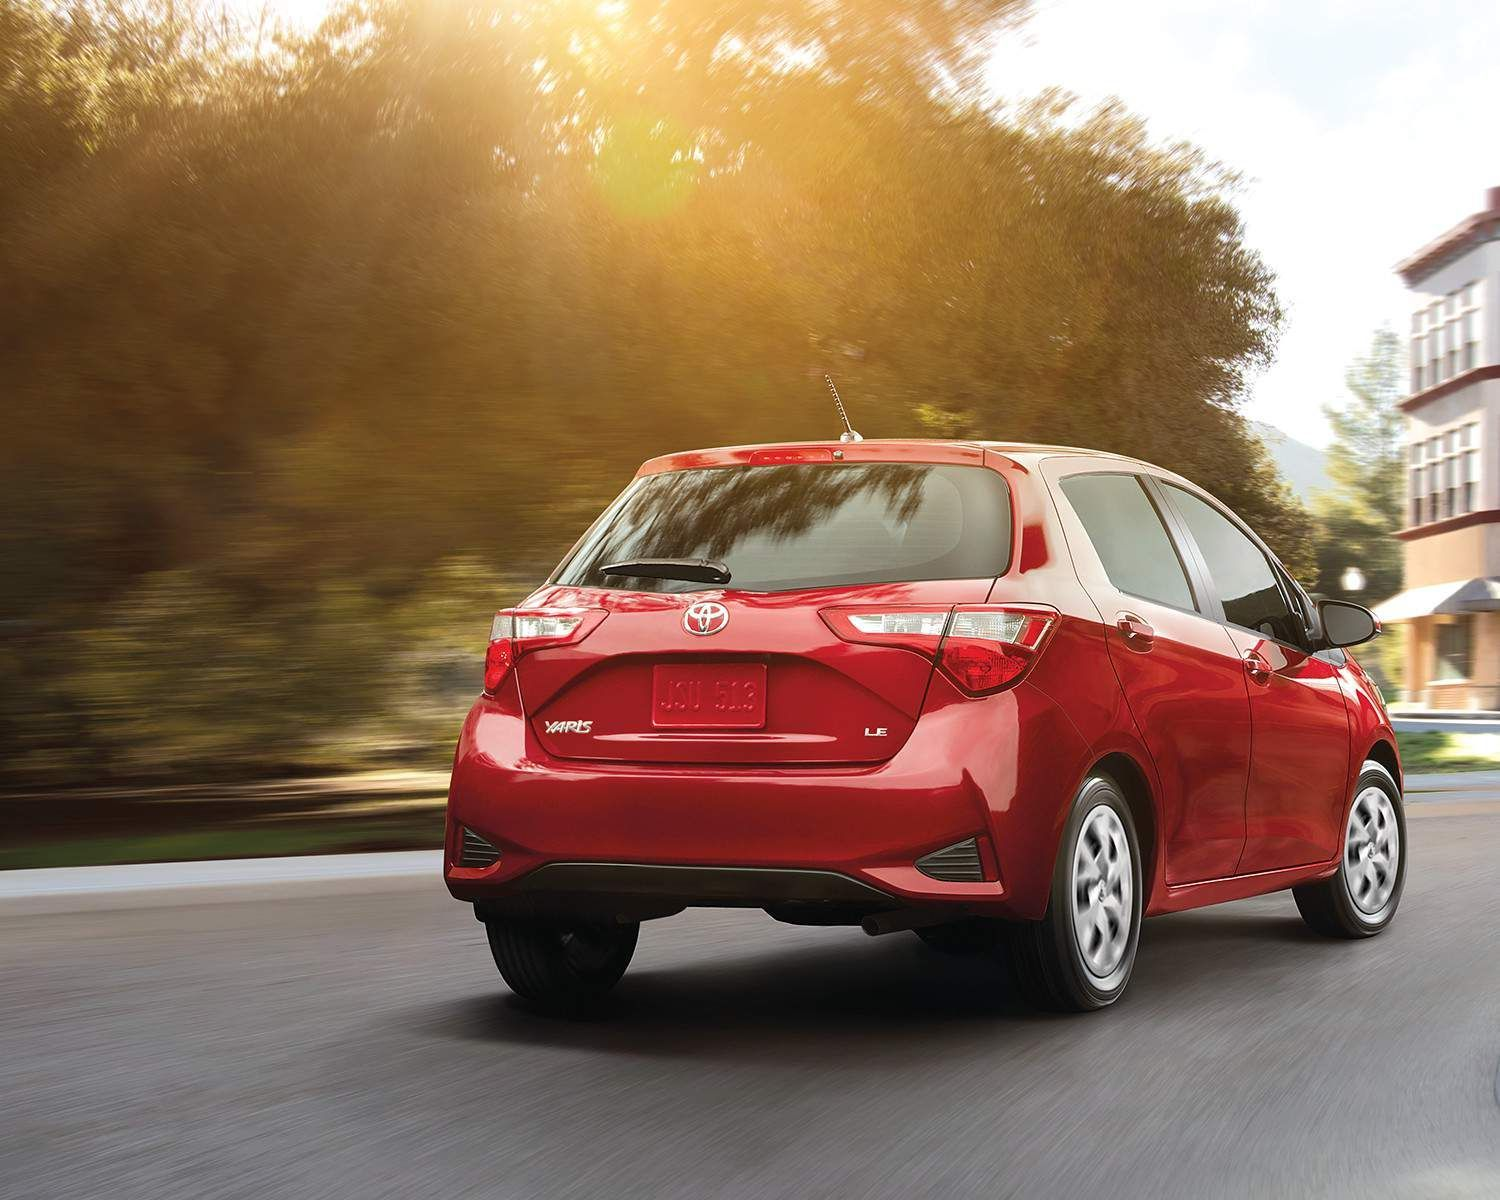 Both Are Powered By A 1.5 Litre 4 Cylinder Engine, And Since The Yaris Is  Smaller Than Its Rival, It Therefore Means A Lower Power Requirement To Get  From ...